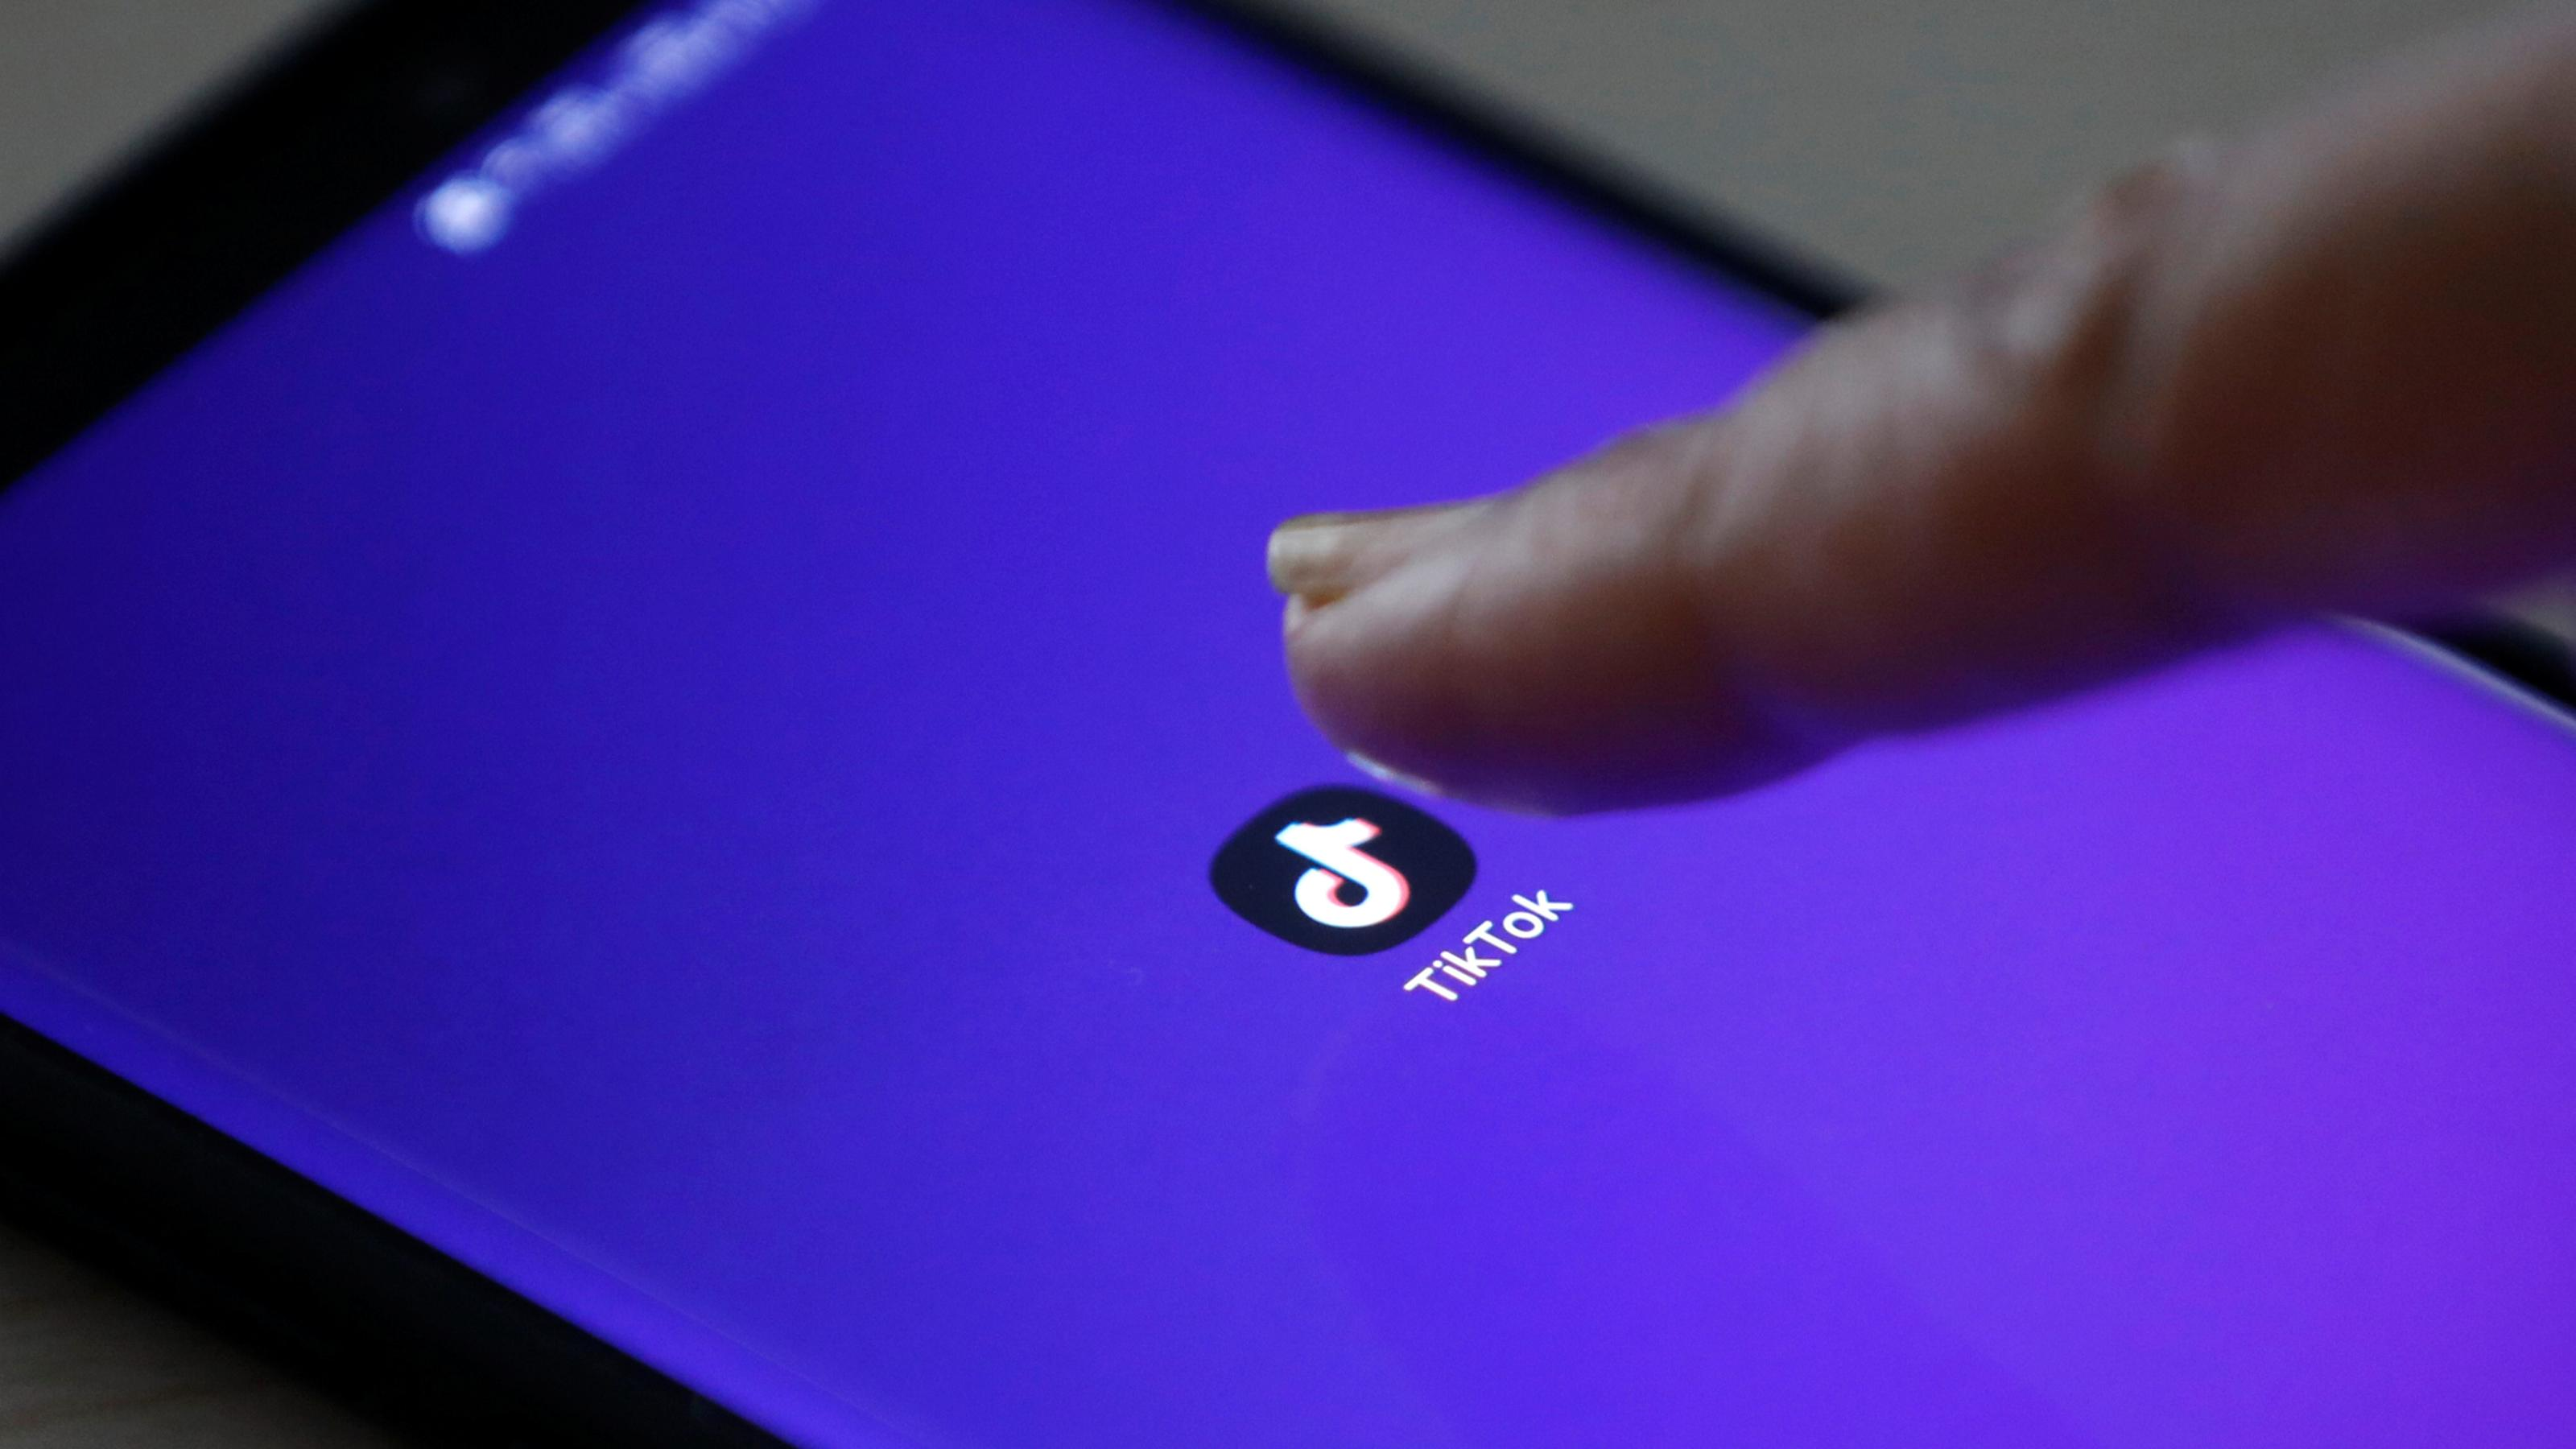 Last year, Indians spent 240% more time on TikTok than in 2018